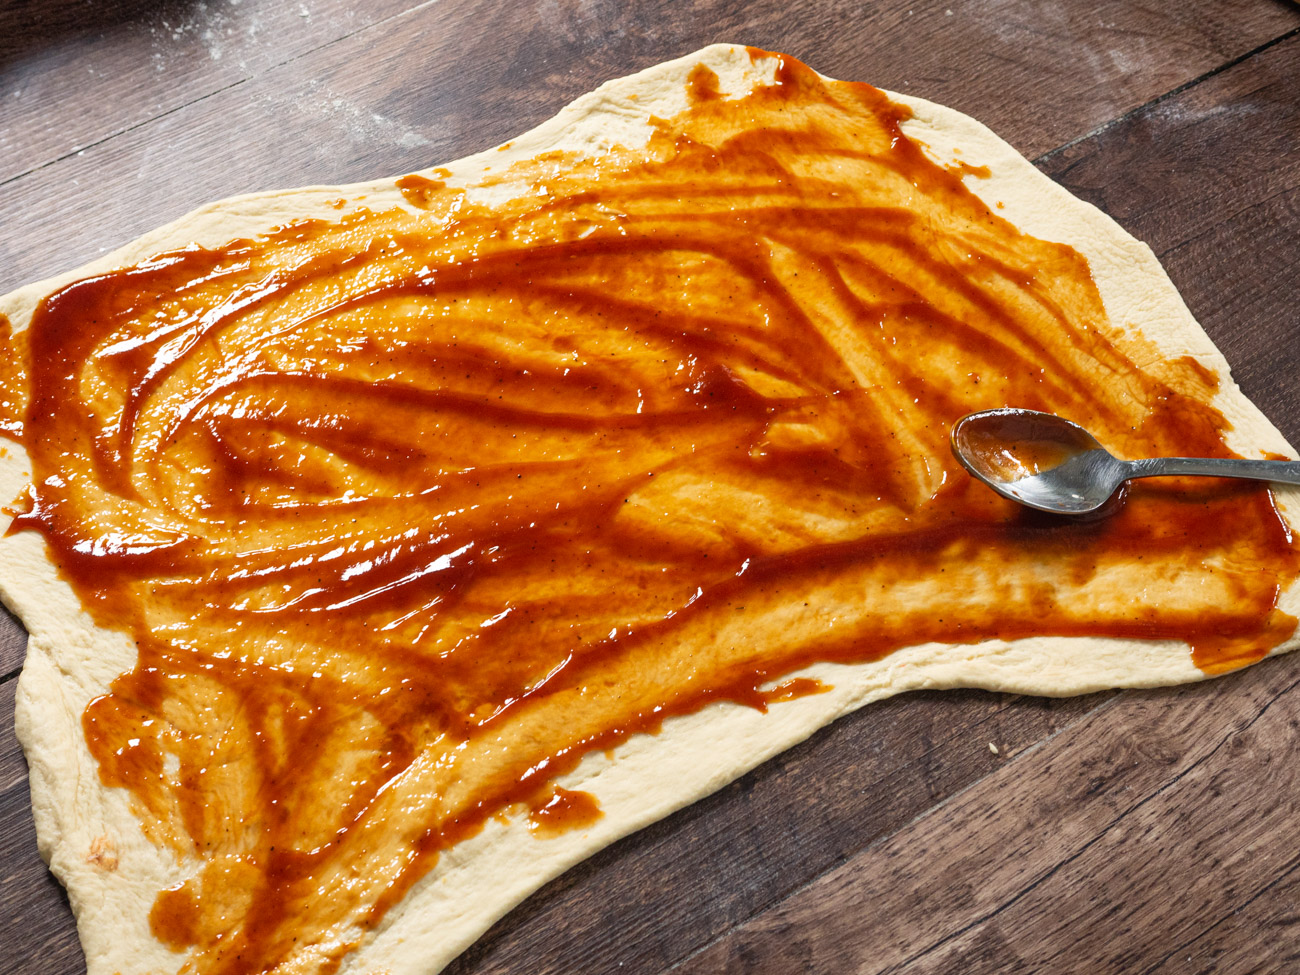 Spread BBQ sauce over the surface of the dough leaving a 1/2-inch border all around the edges.